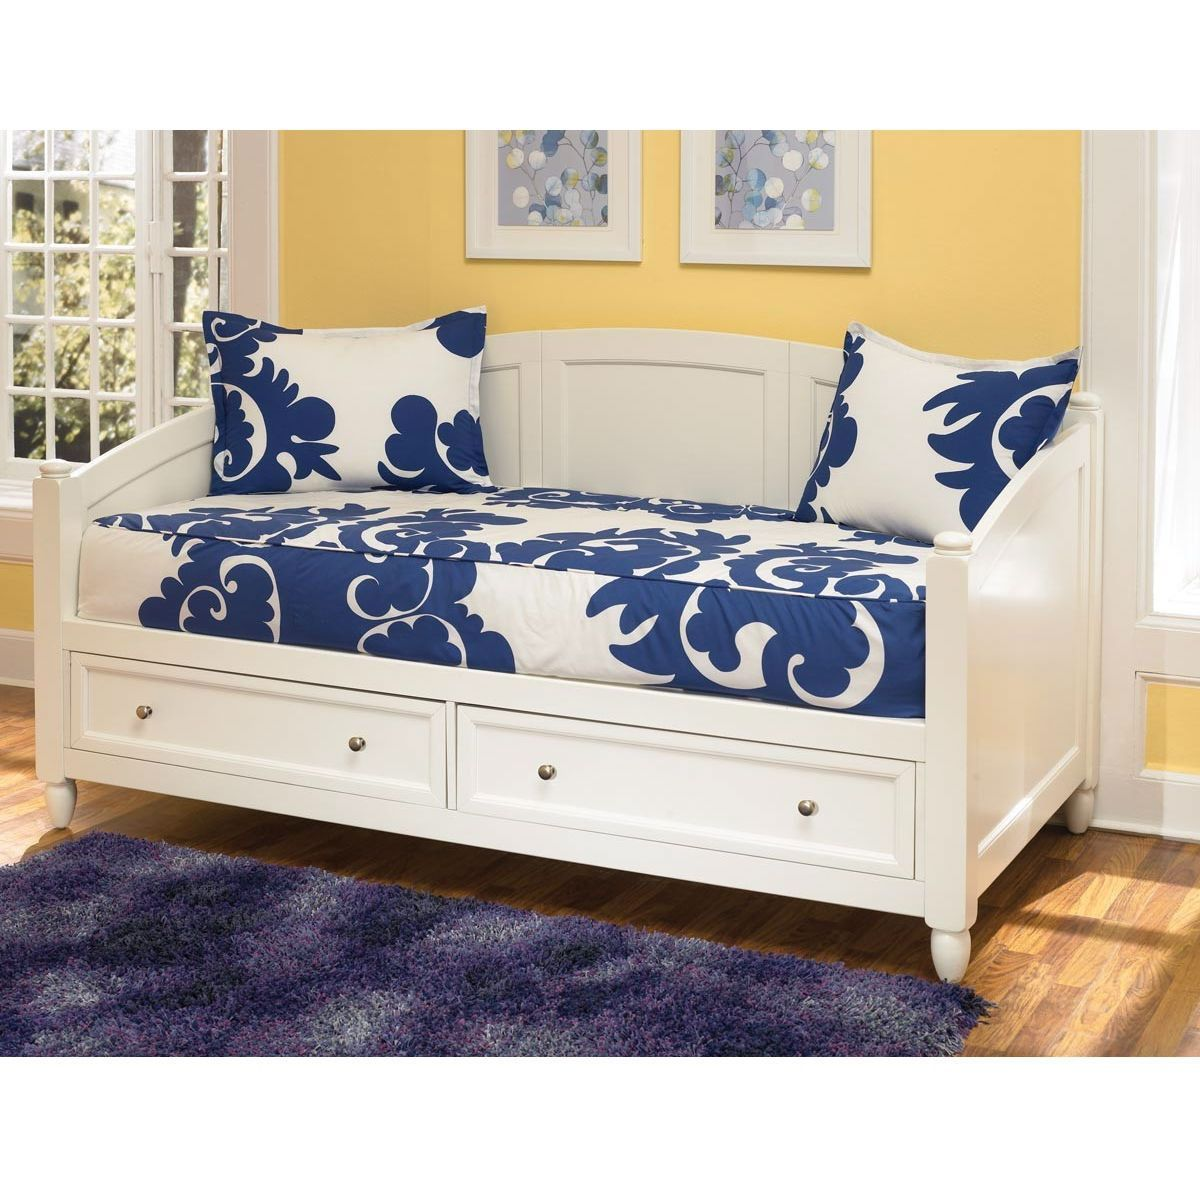 Twin size Contemporary White Wood Daybed with 2 Storage